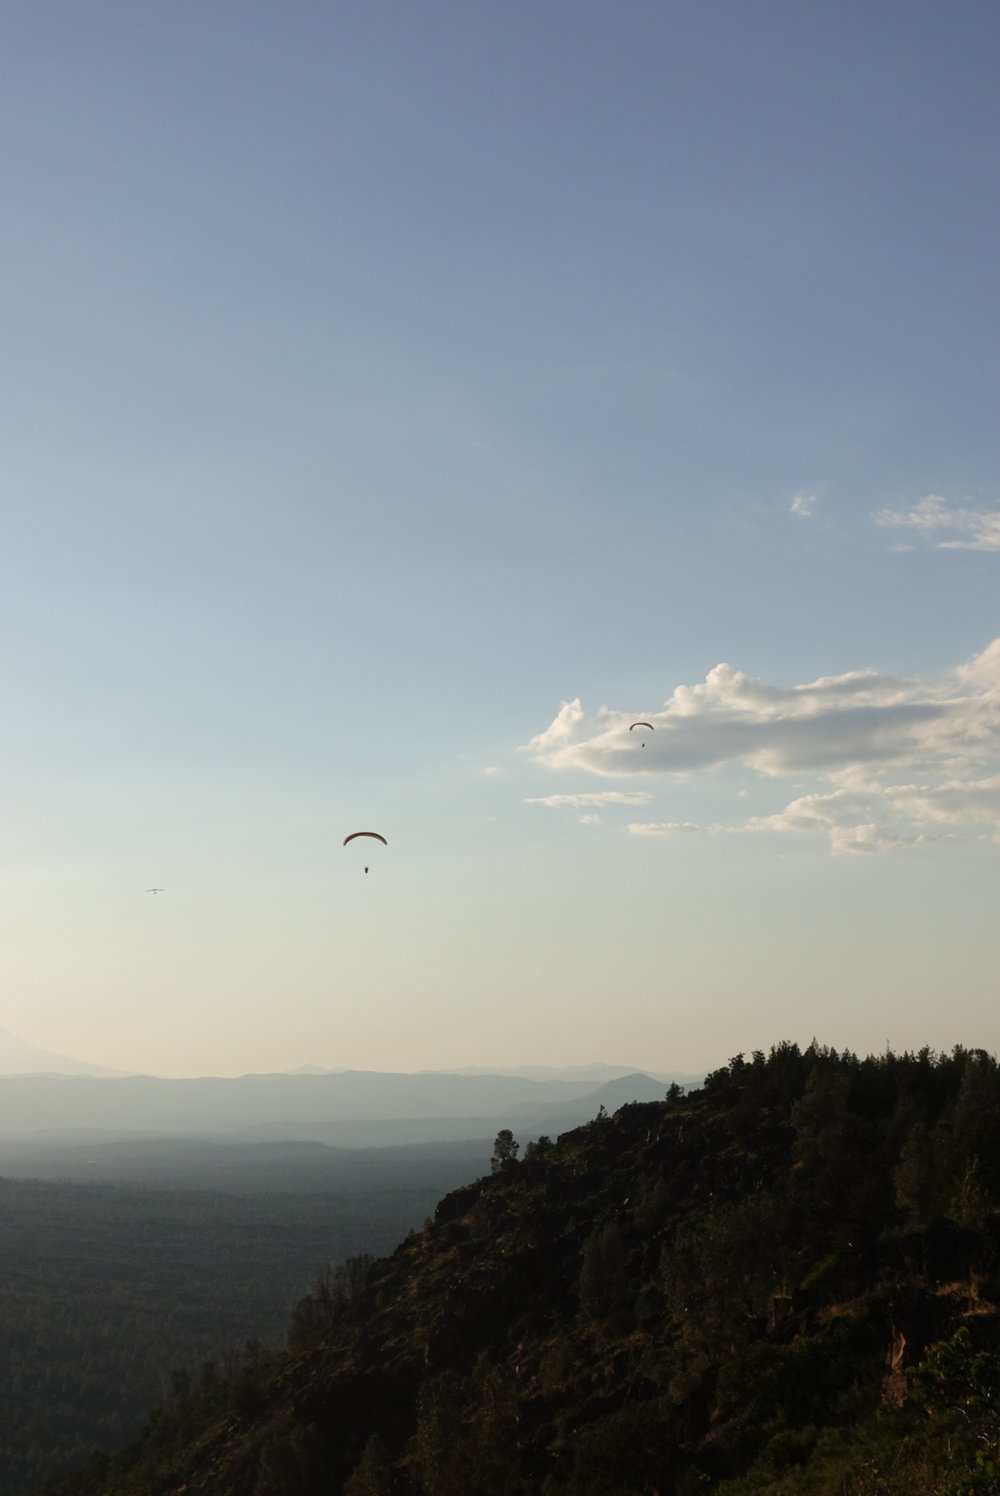 Just as the sun was setting we saw over 30 paragliders taking off up into the sky.